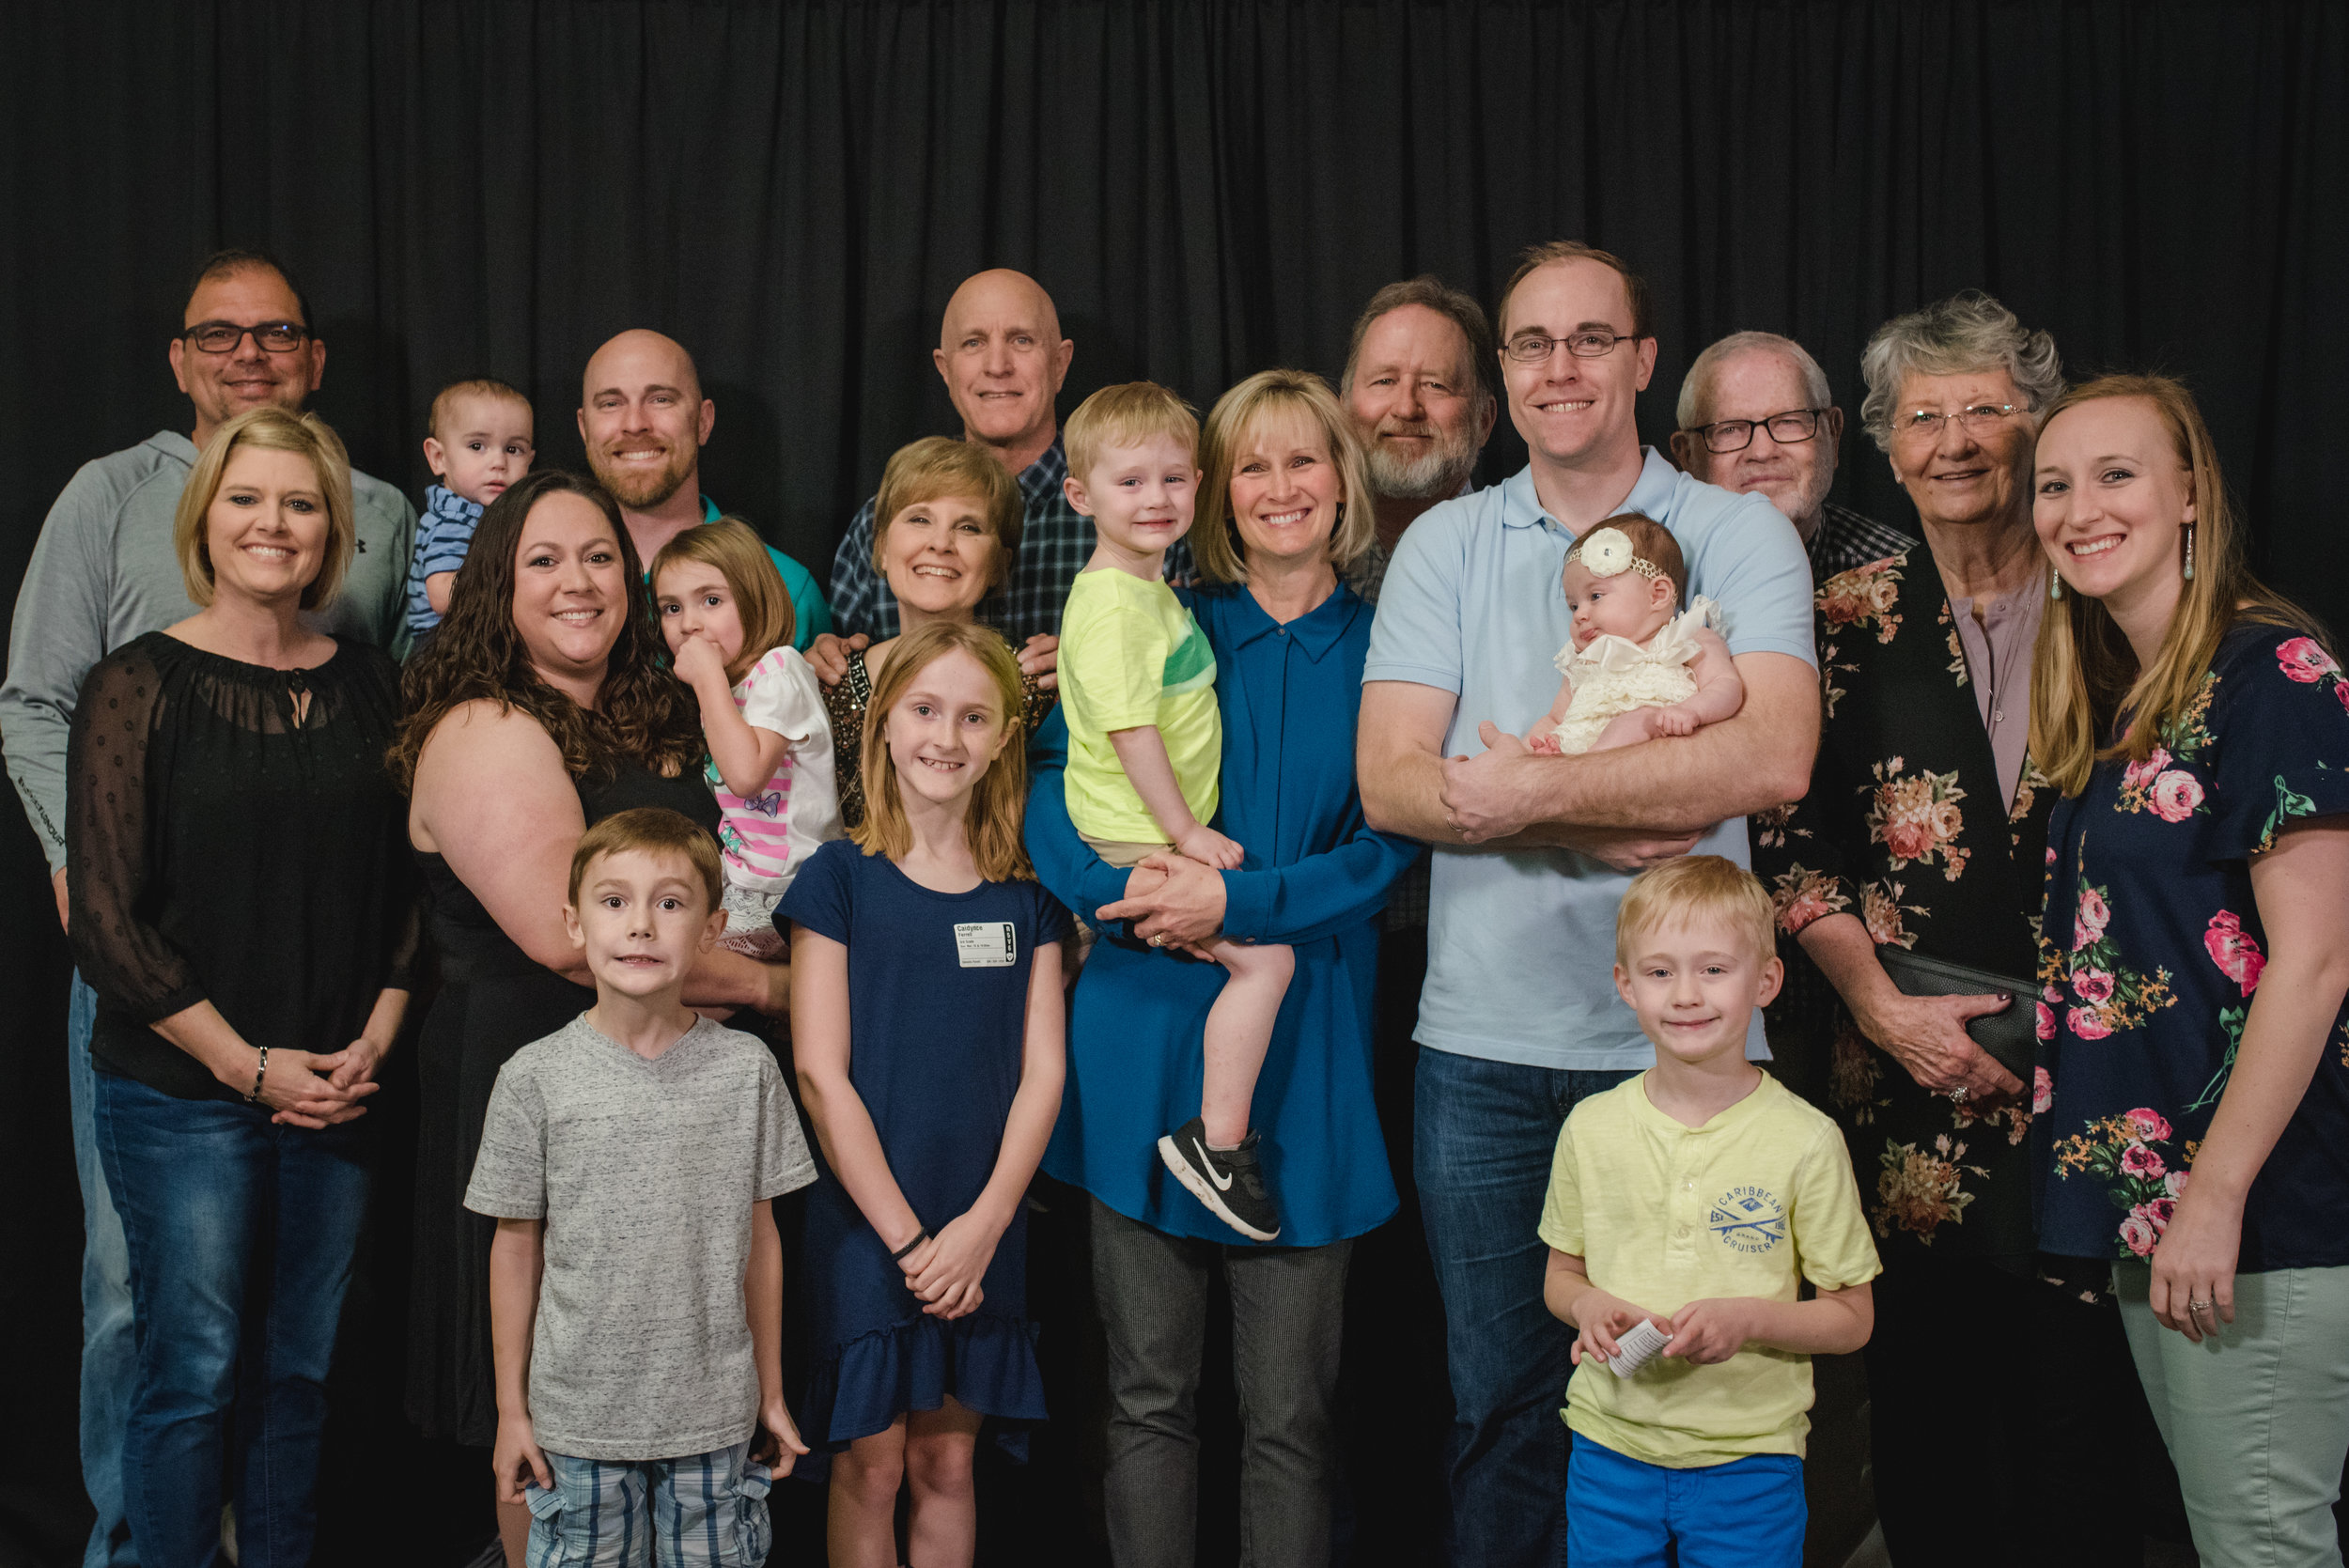 Jacob and Amanda pictured with some of their family and friends